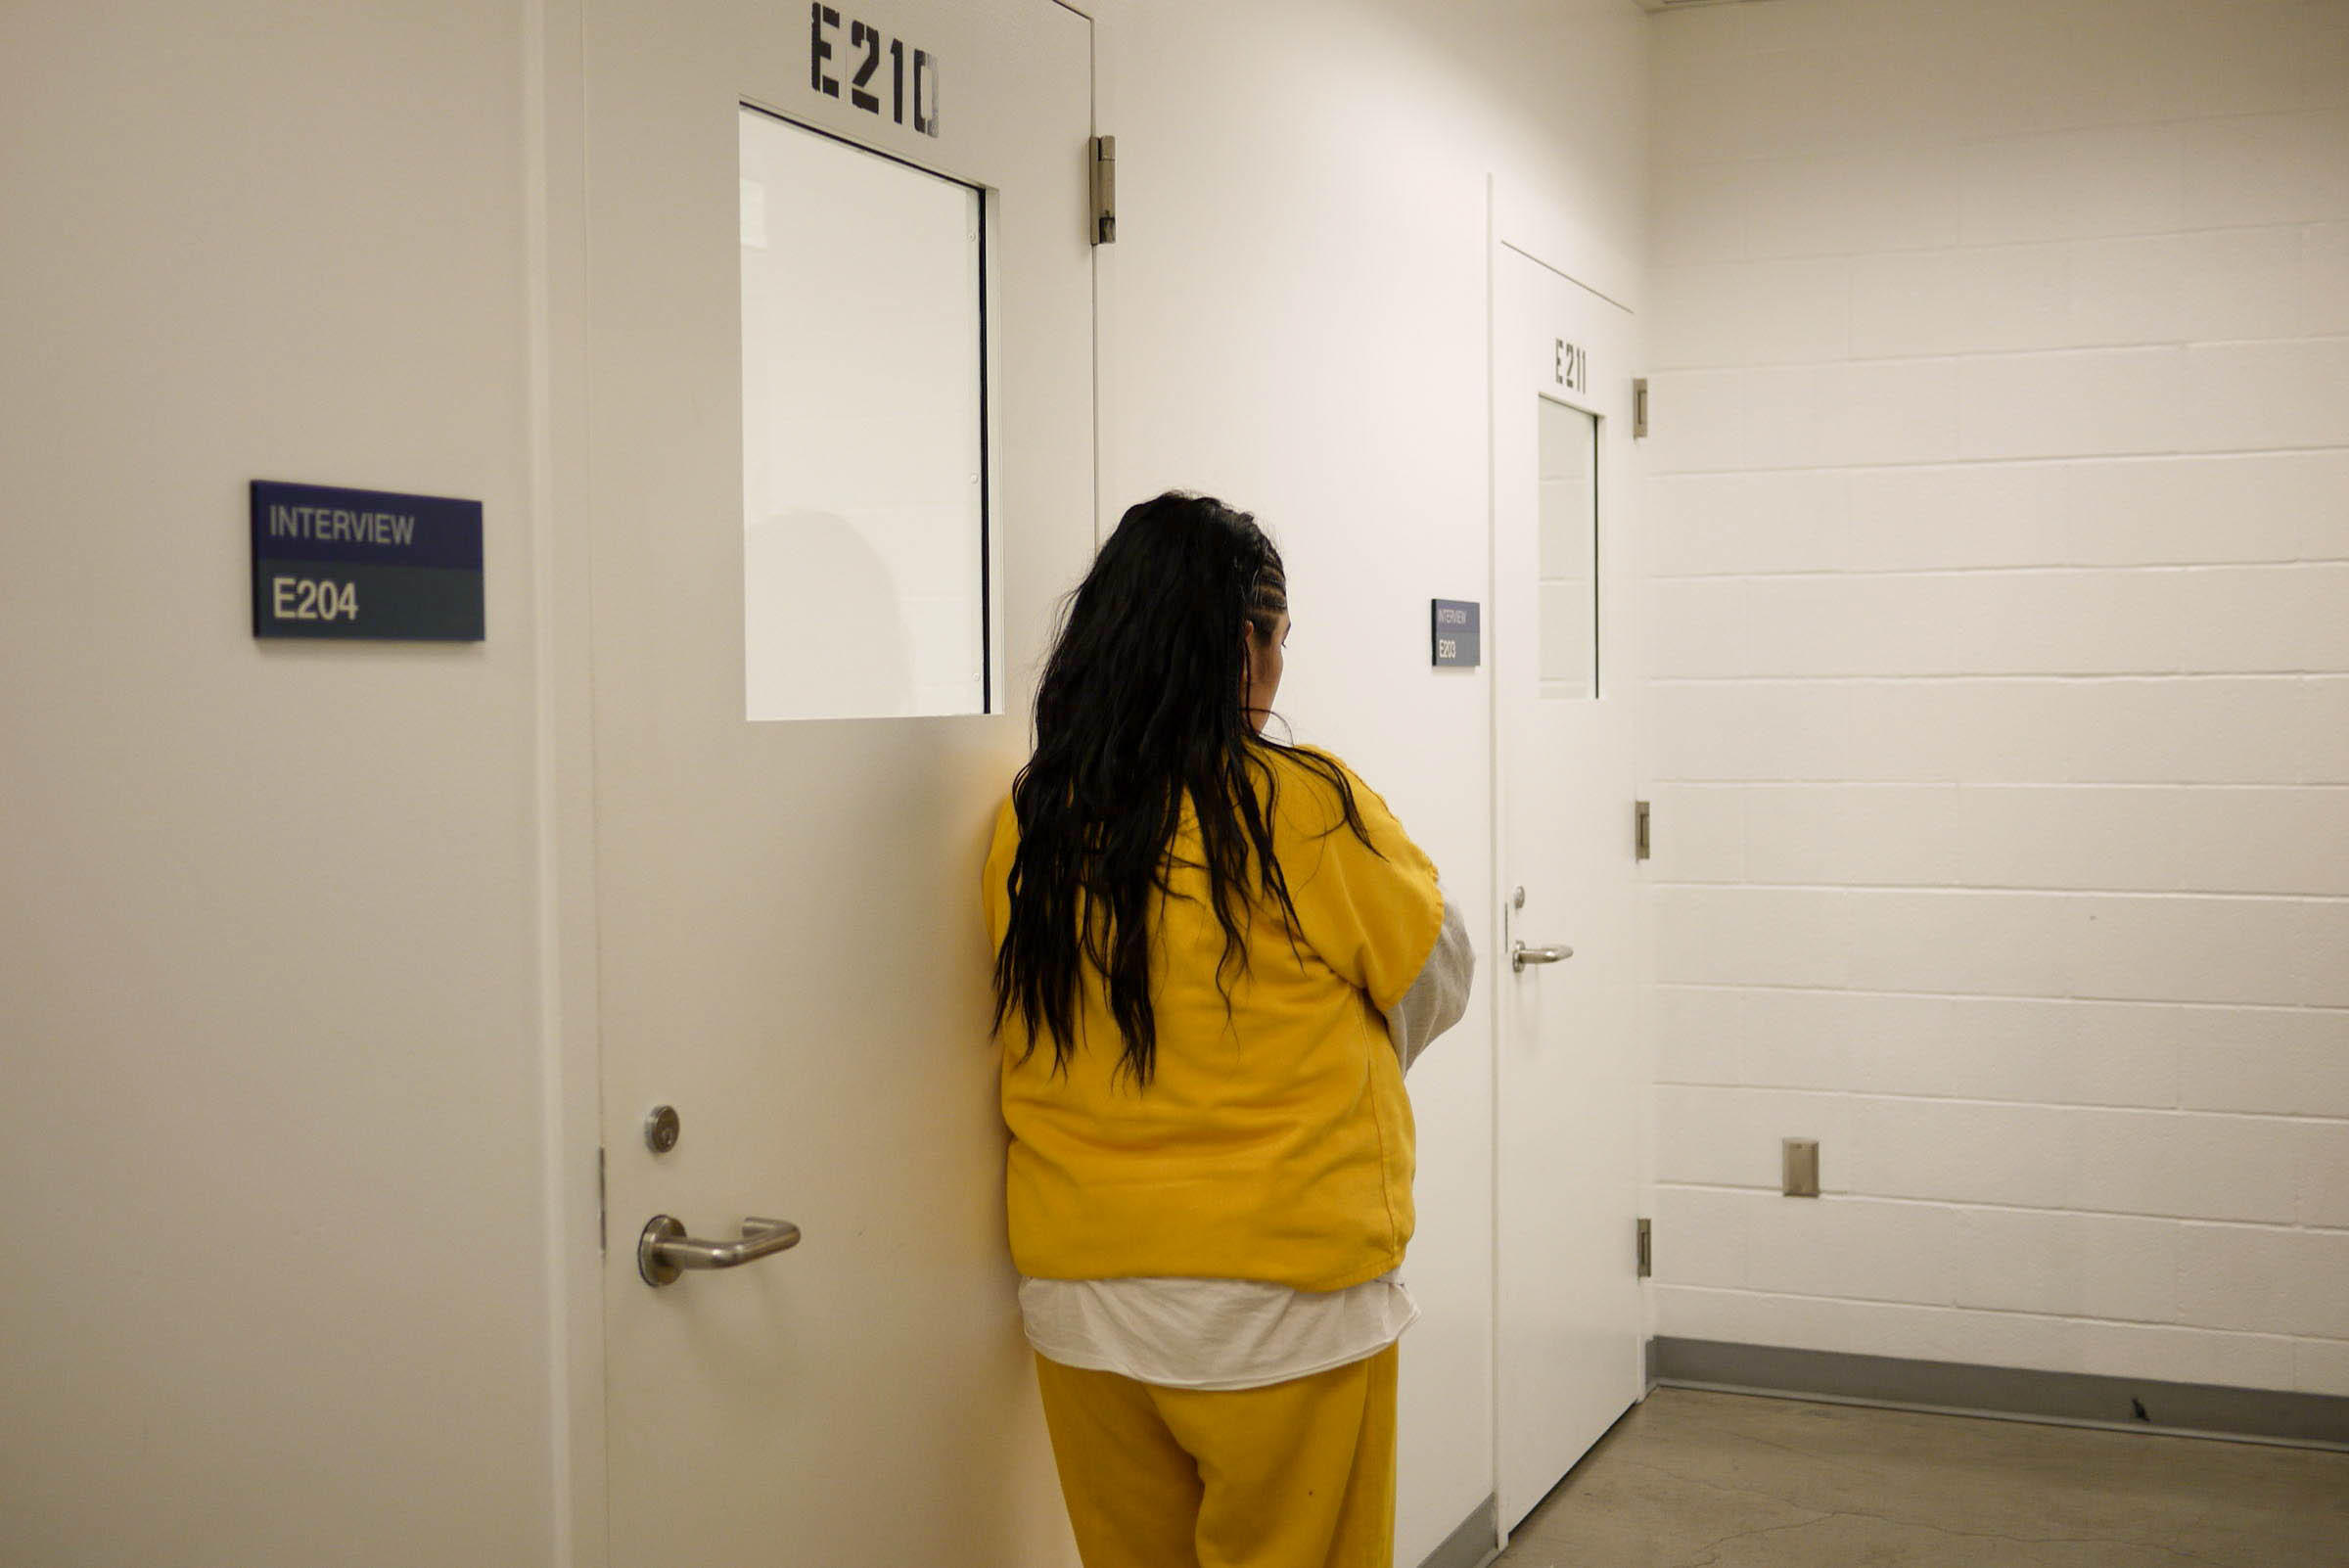 Her miscarriage in ICE detention raises questions about care